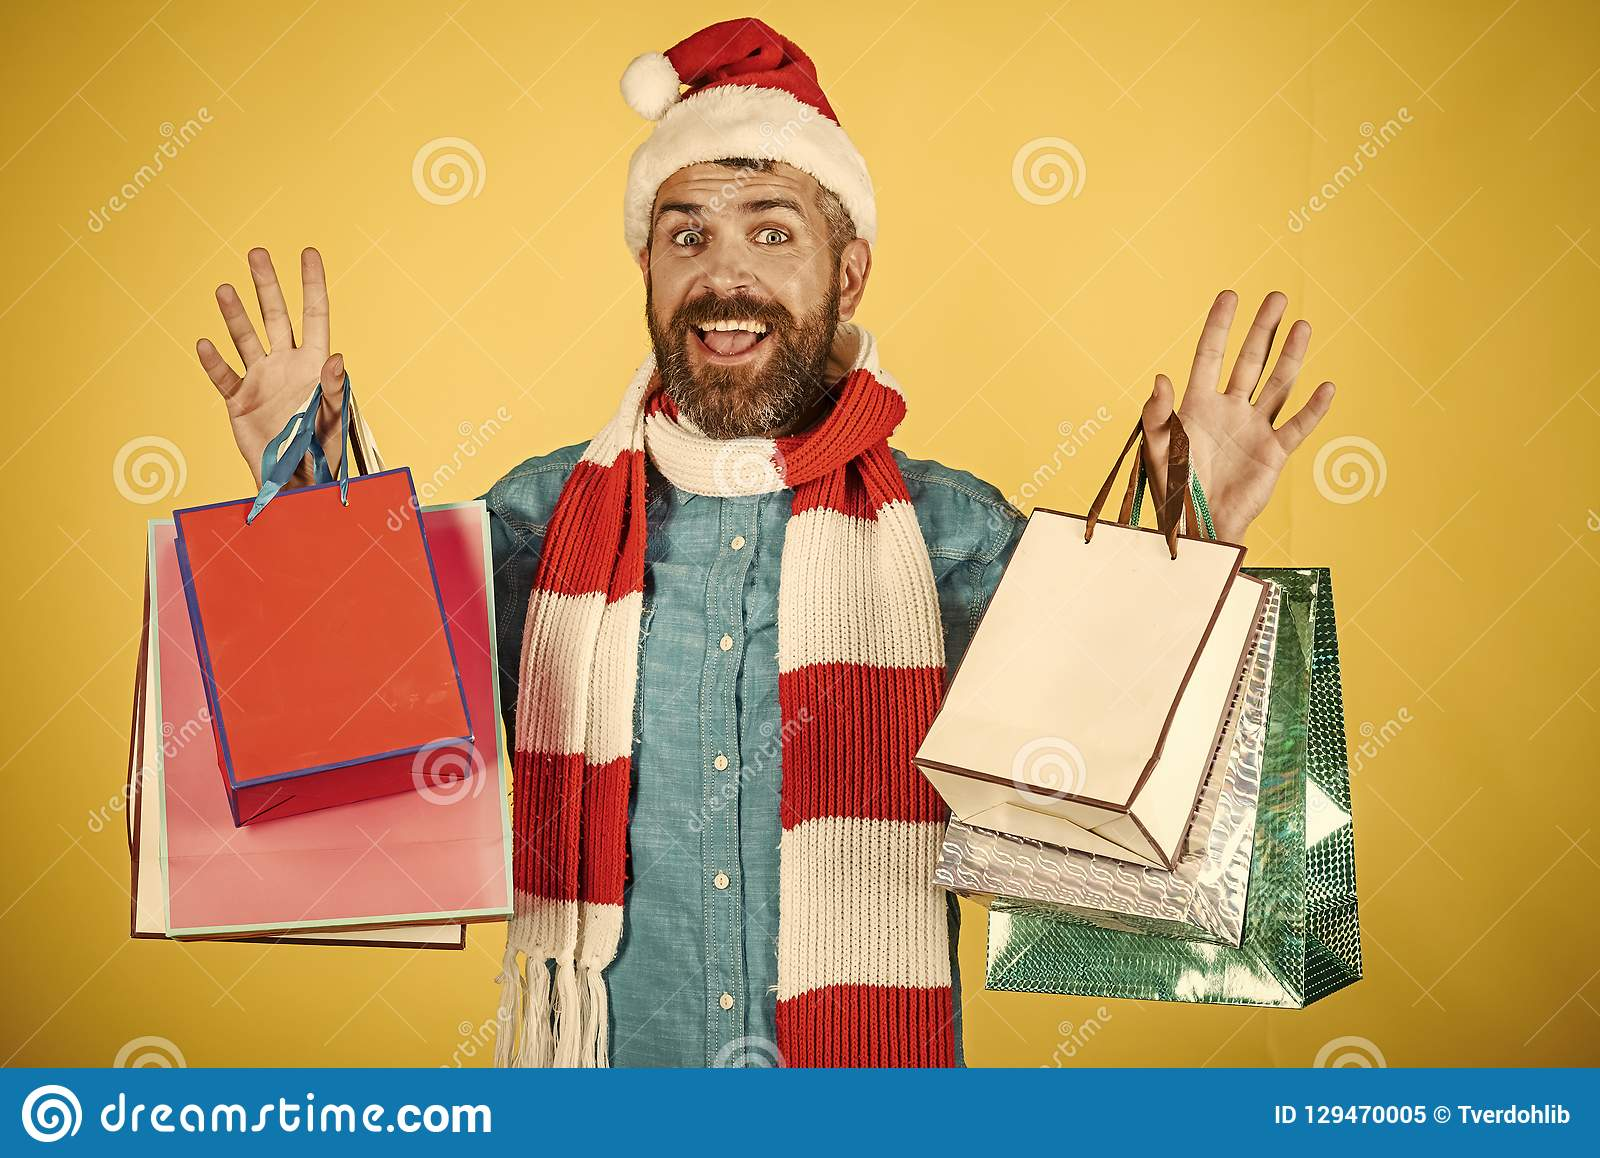 f981625699b22 Christmas hipster shopper smile in santa hat and scarf. Man hold shopping  bags on yellow background. New year